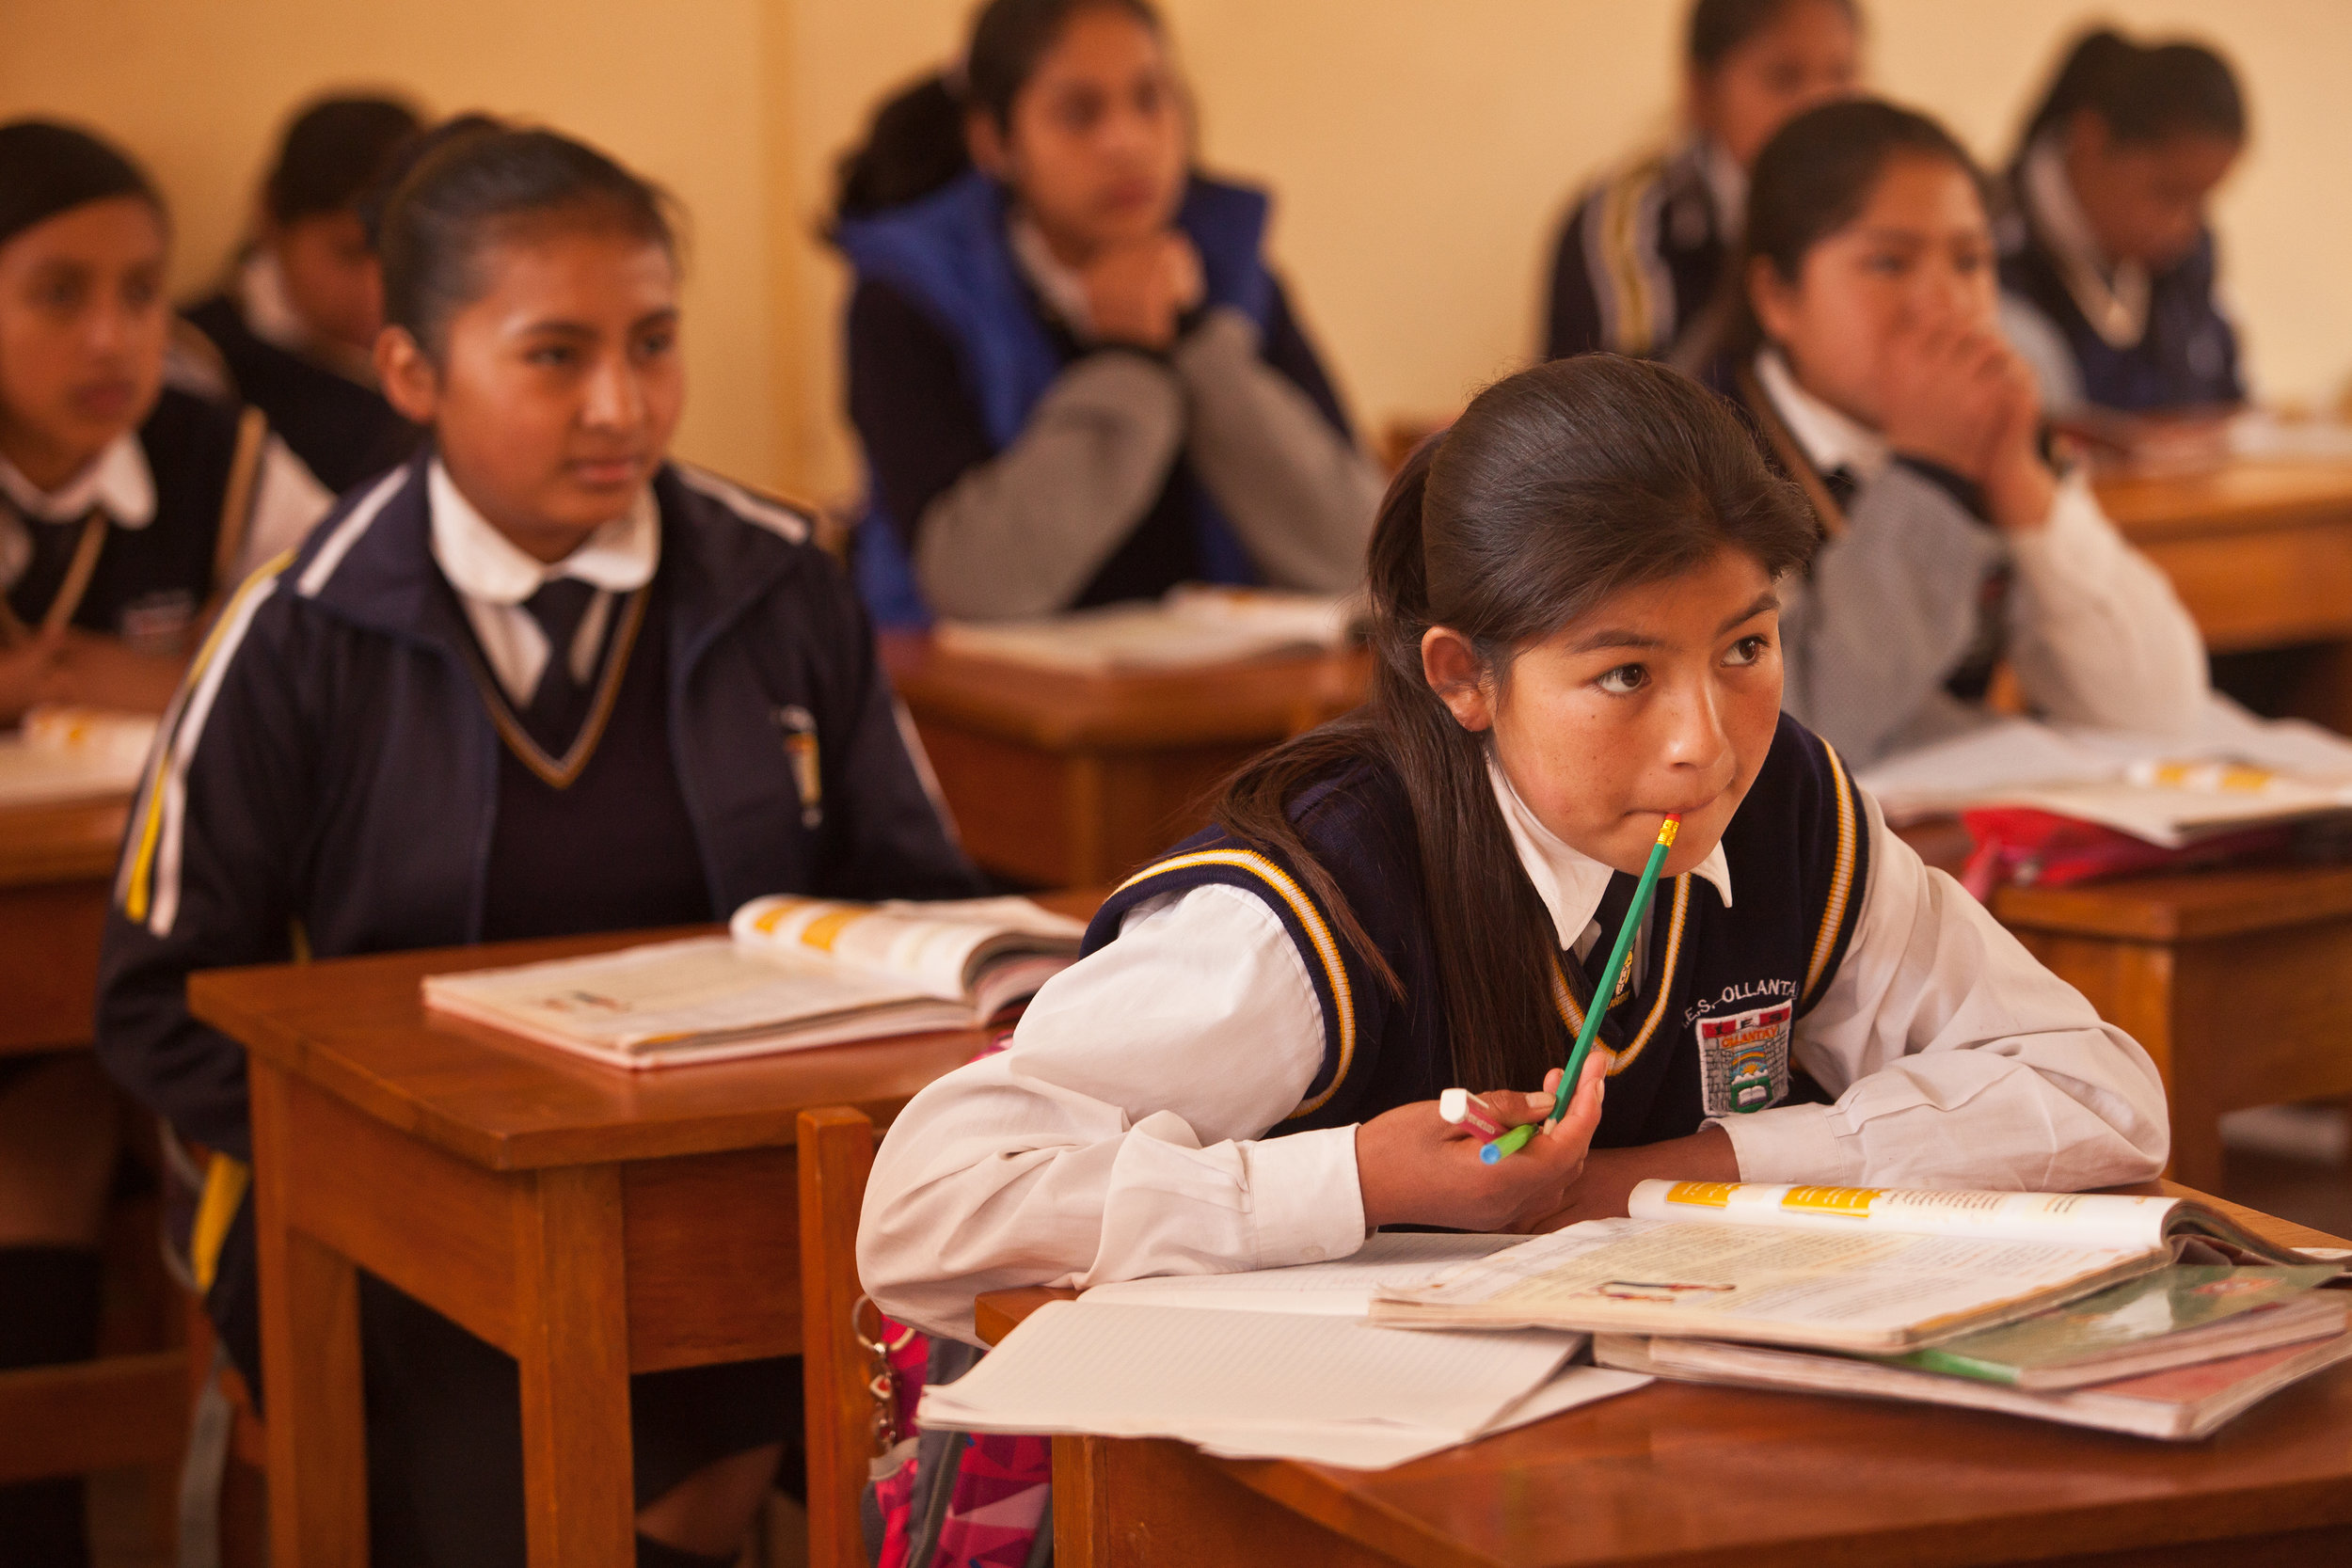 Yessenia listens in class -- she receives a scholarship from She's the First that covers both her tuition fees and all the costs involved with living with Sacred Valley Project - room & board, house mothers, mentorship, tutoring sessions and leadership skills.